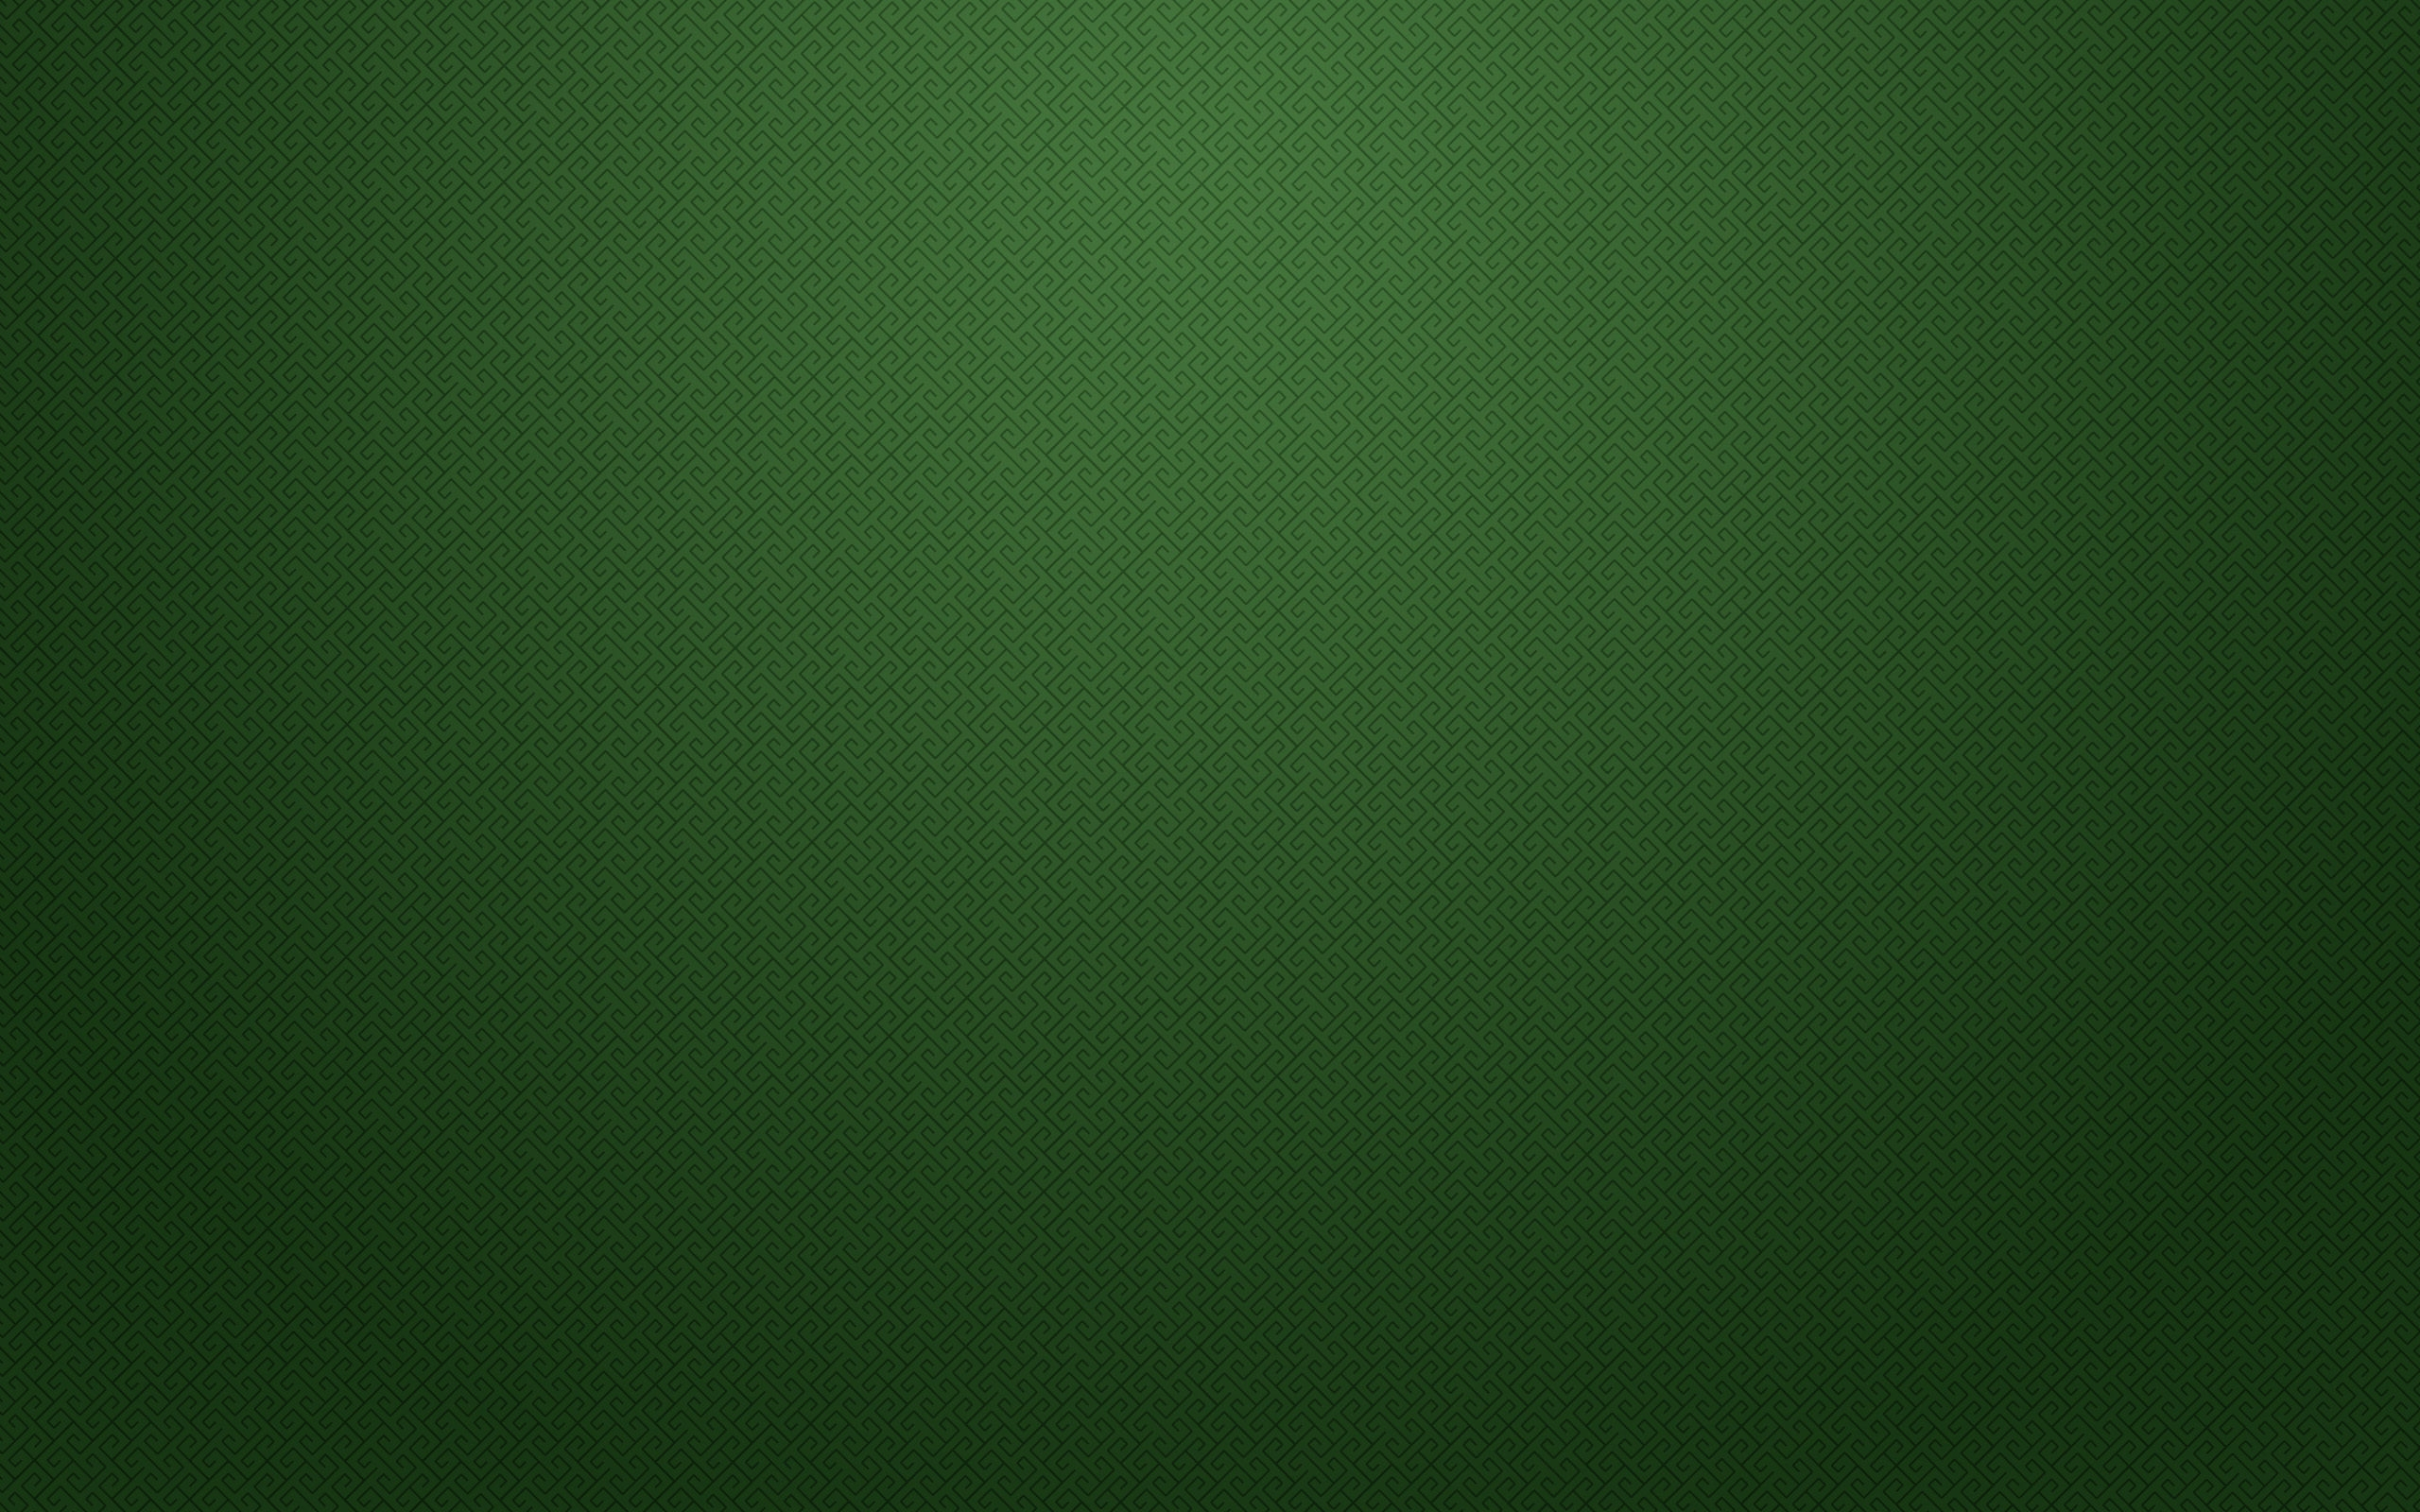 15  Green Grunge Wallpapers FreeCreatives